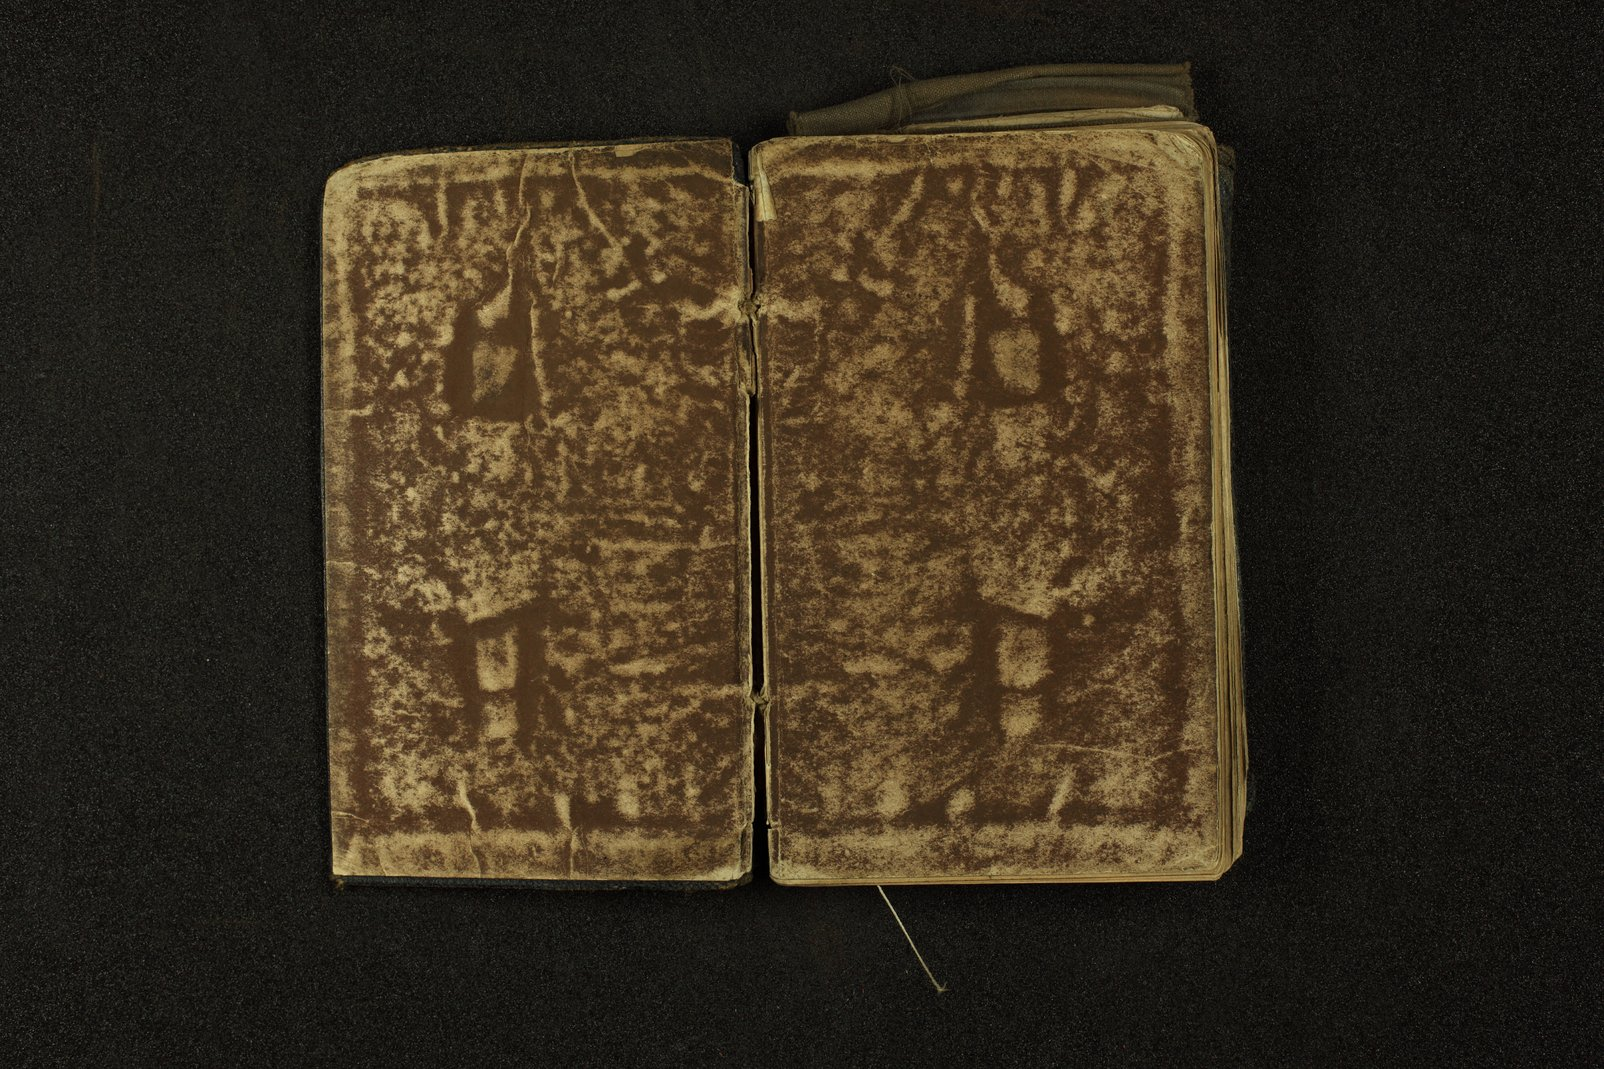 Clergyman's pocket diary and visiting book belonging to Boston Corbett - Inside cover